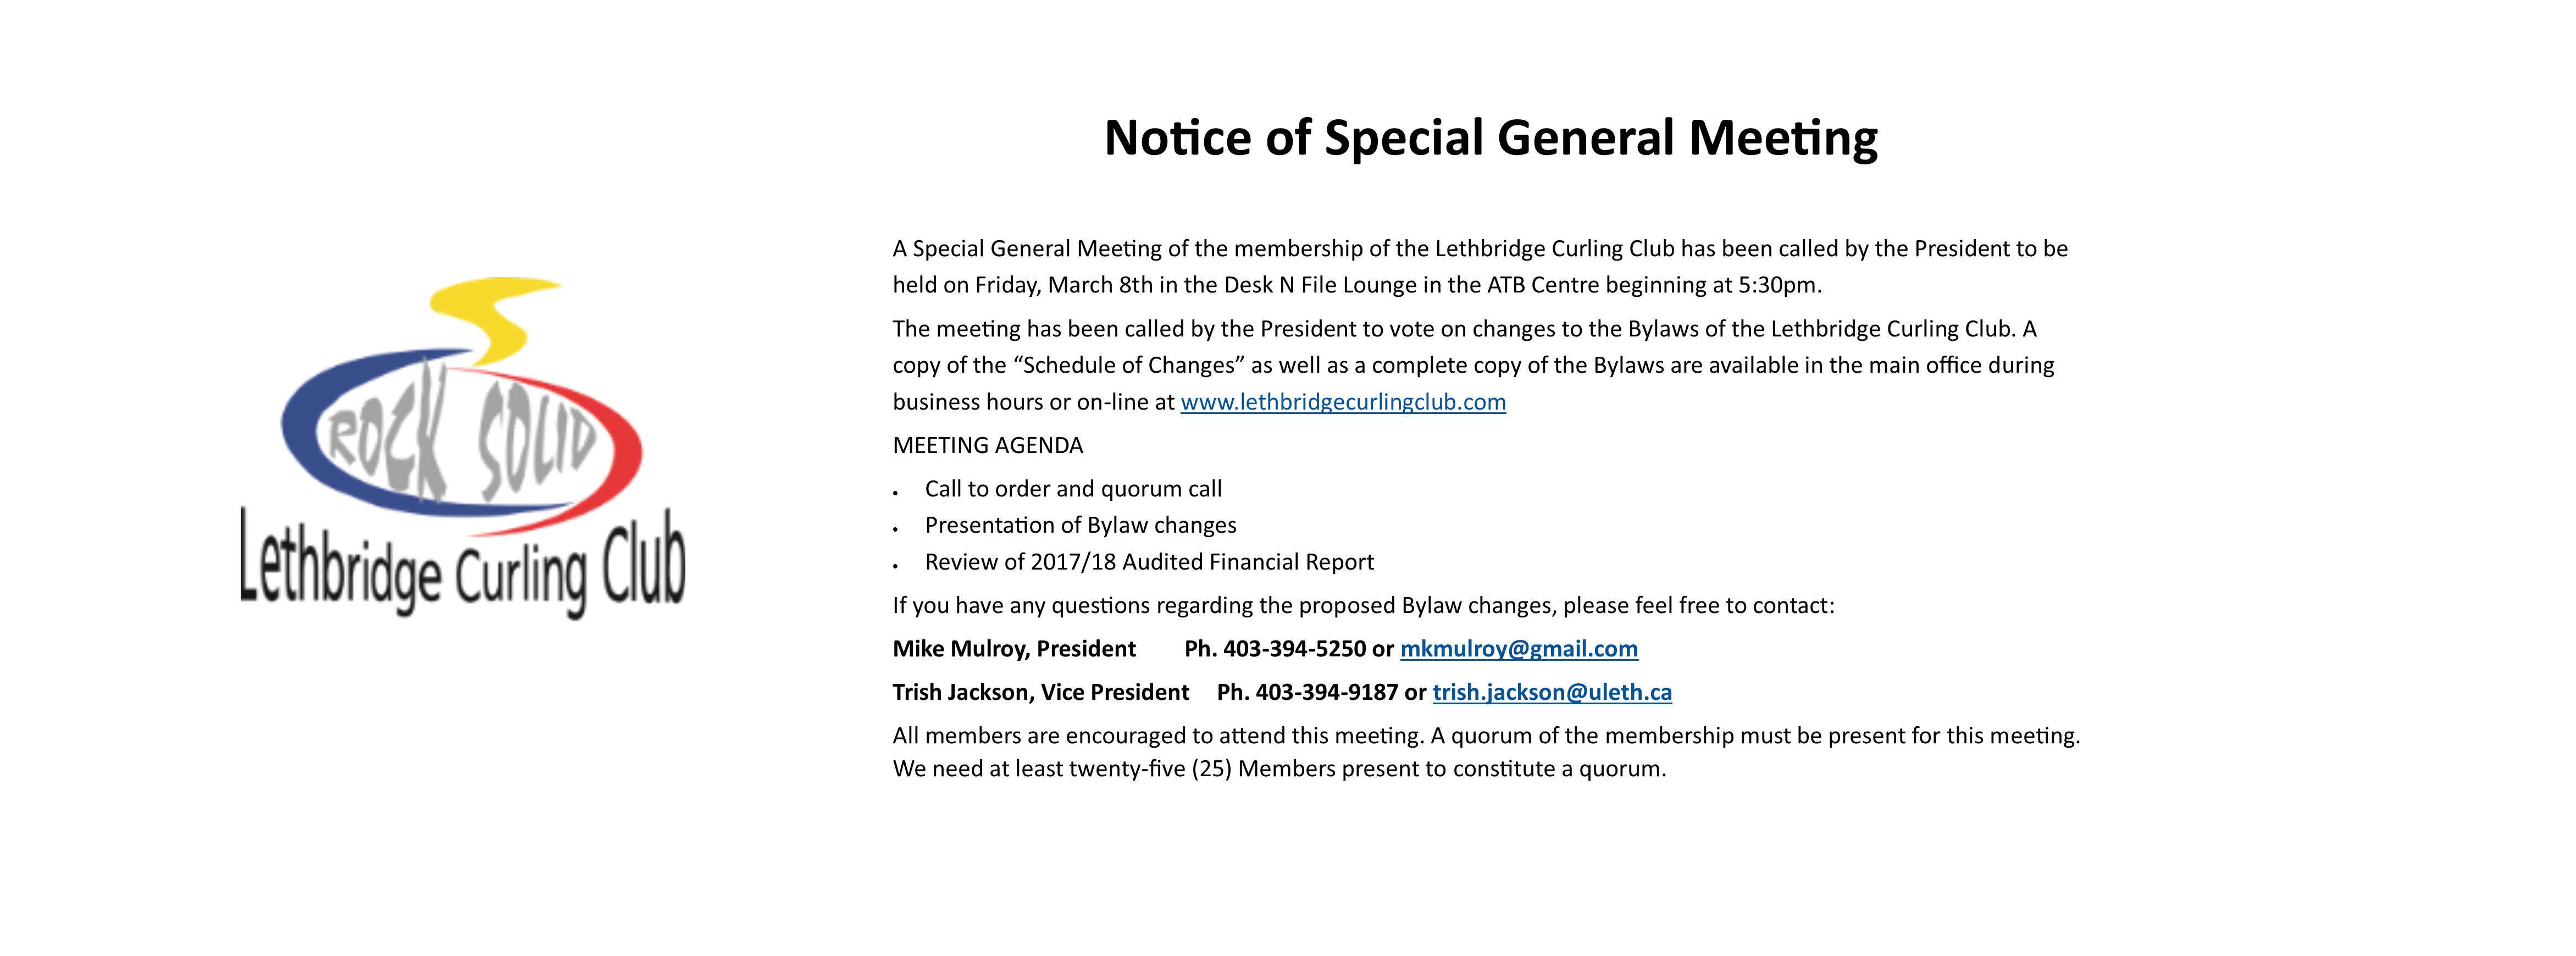 <div id=slideshow_title>NOTICE OF SPECIAL GENERAL MEETING</div> <br><div style='text-align: left; font-size: 18px;'>Friday, March 8, 2019. 5:30pm - Desk N File Lounge</div>